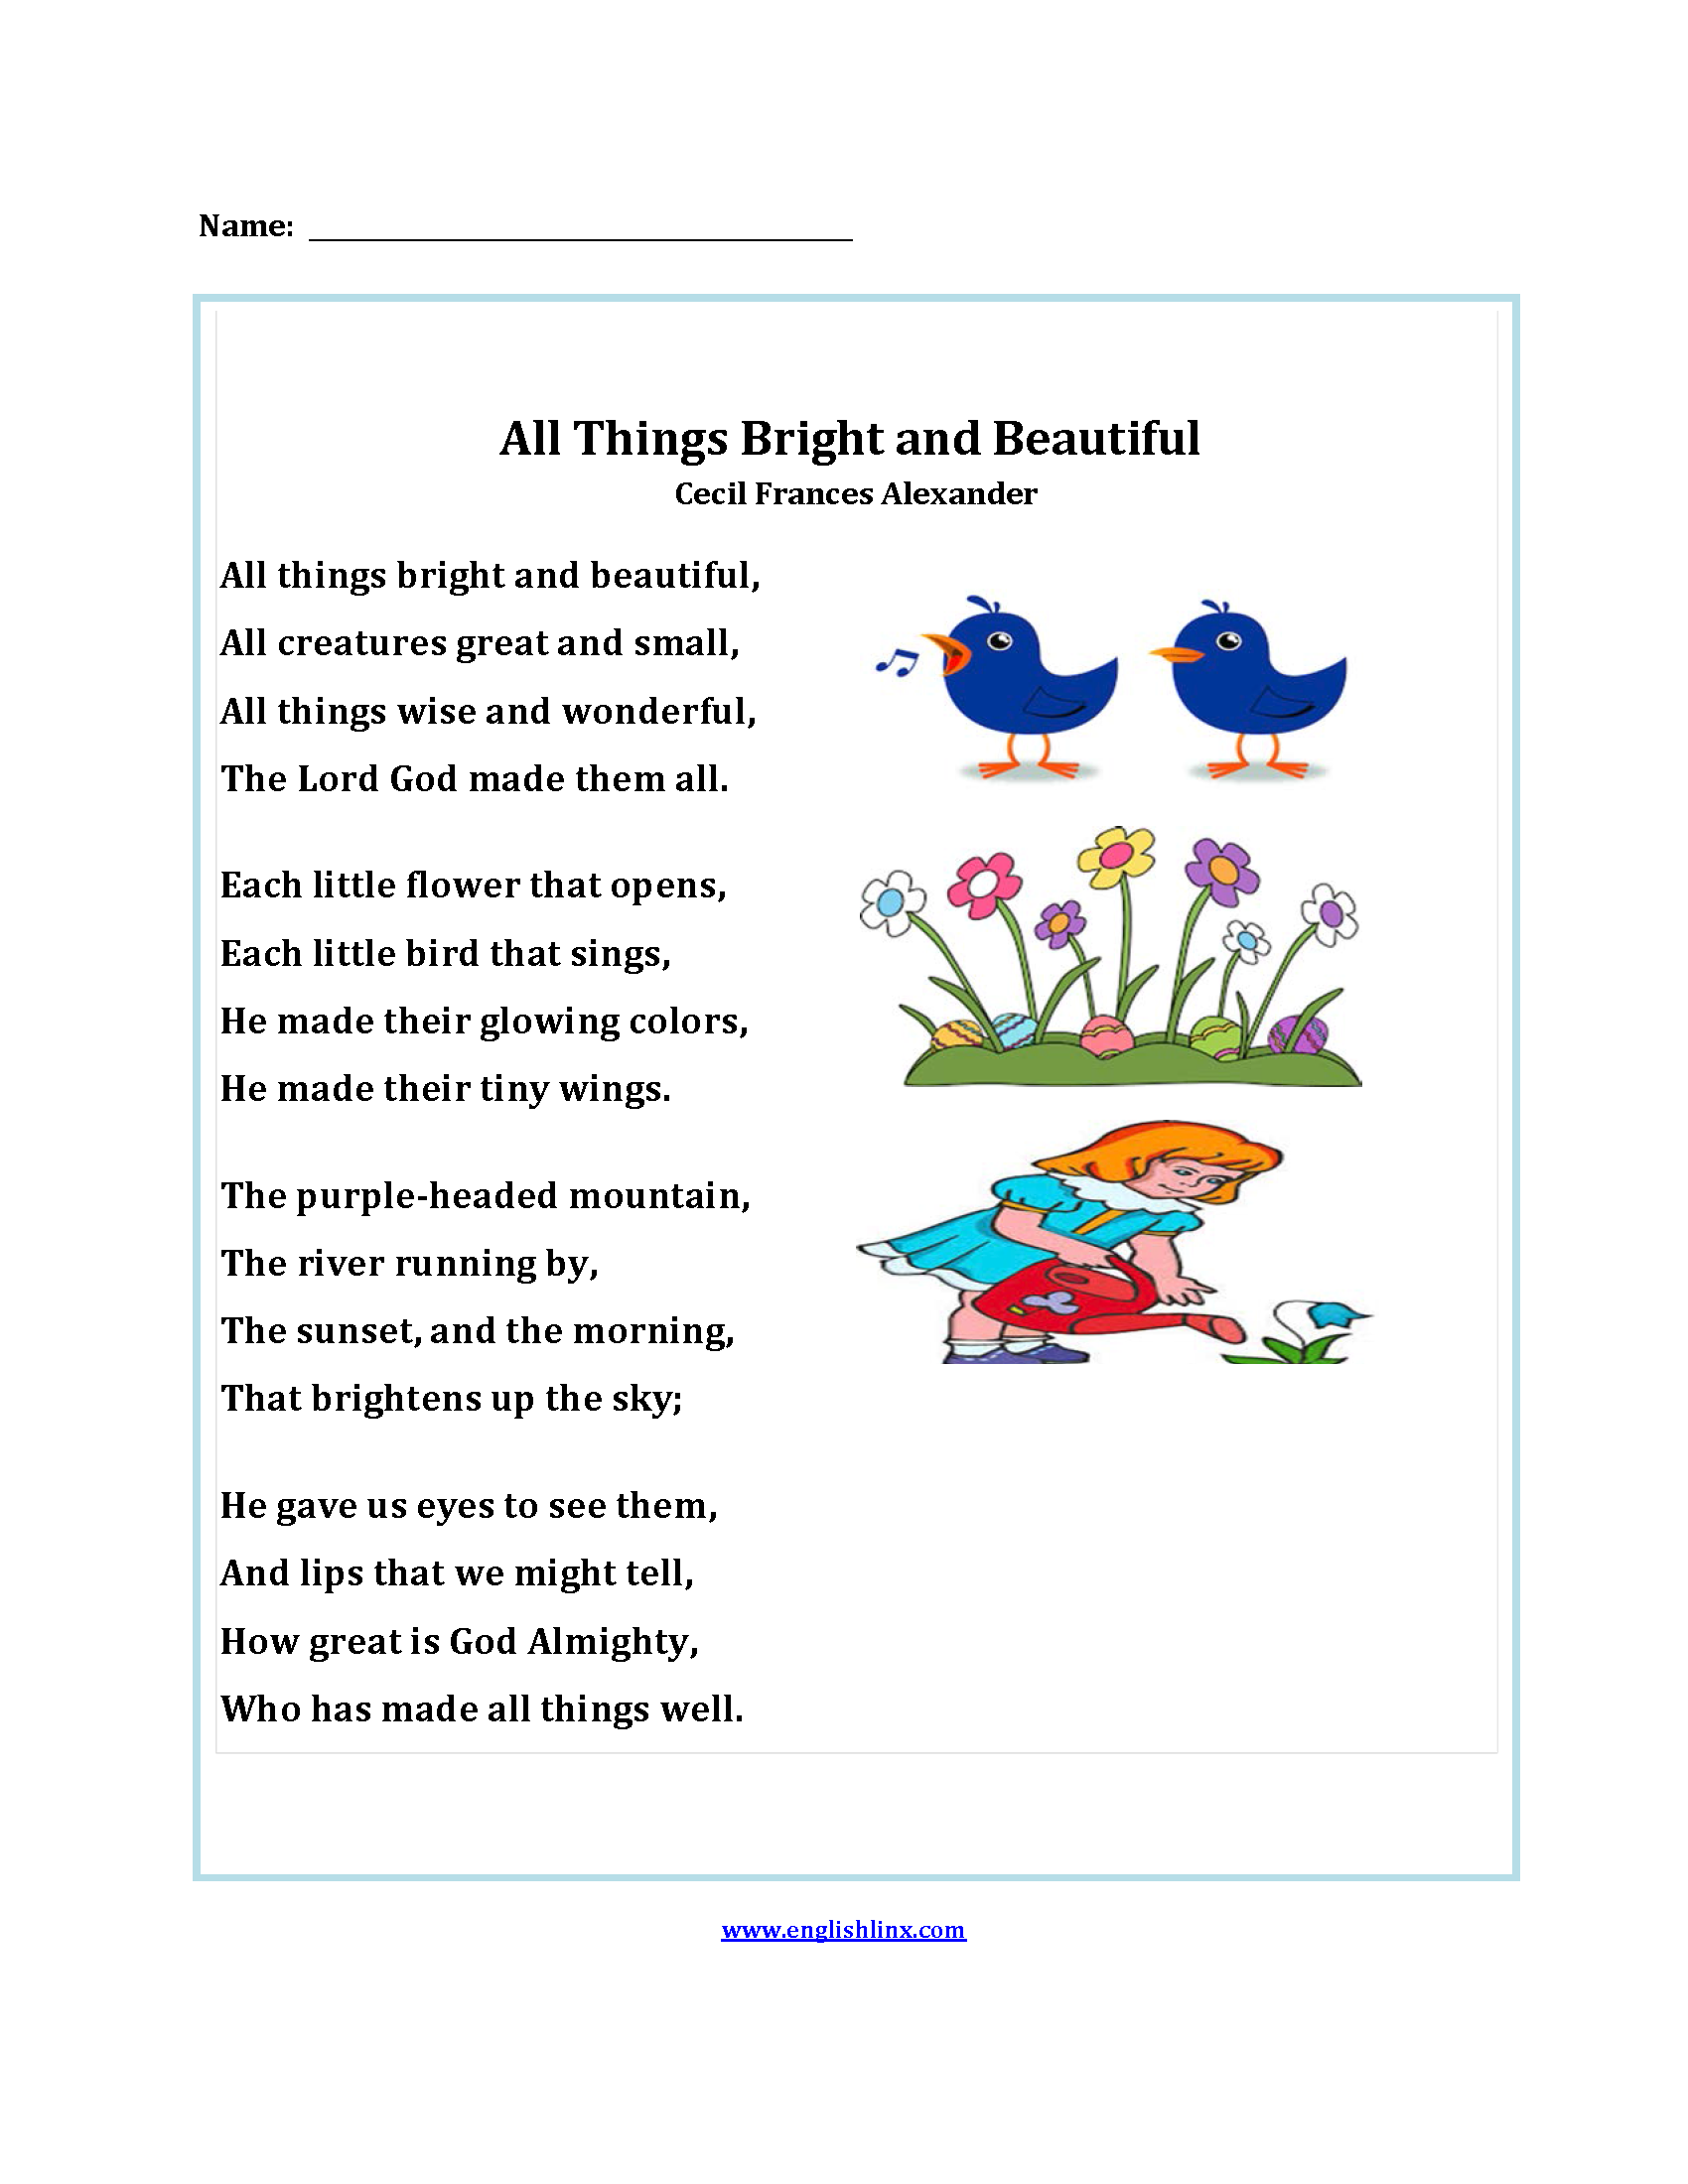 Worksheets Alexander The Great Worksheet all things bright and beautiful poetry worksheets englishlinx these are great for working with use the beginner intermediate levels